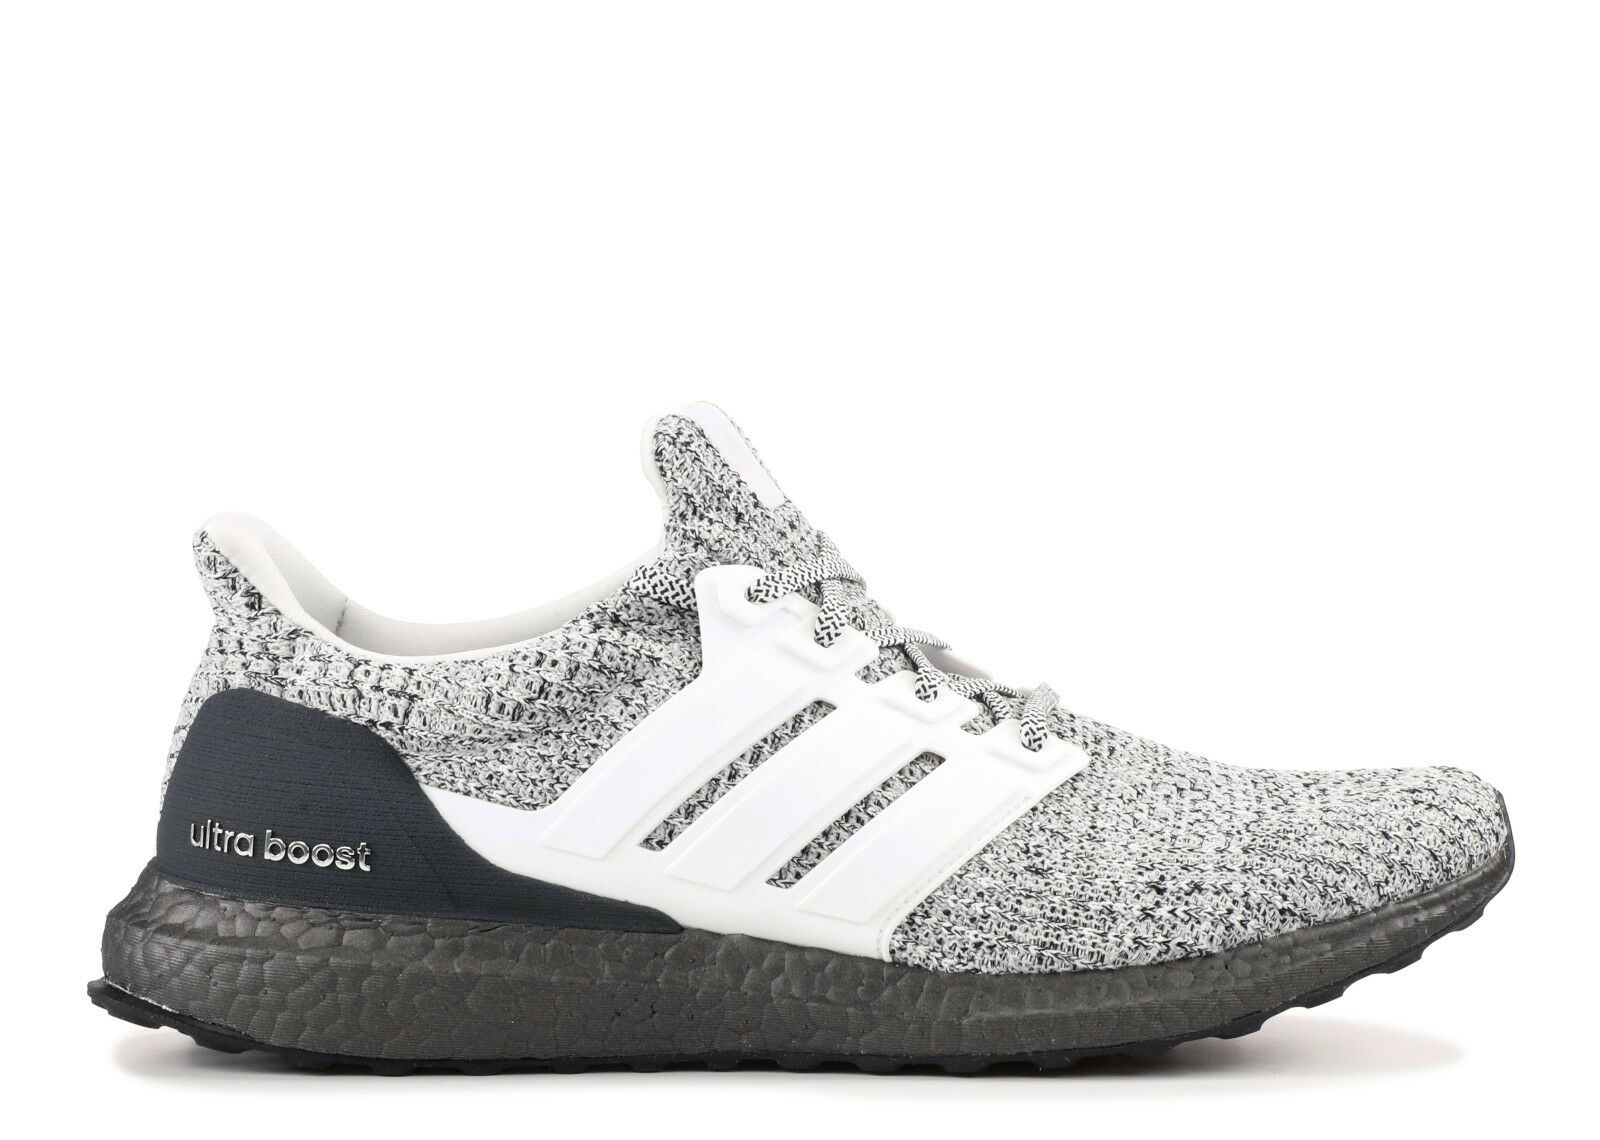 NEW ADIDAS ULTRABOOST 4.0 OREO BB6180 COOKIES AND CREAM LTD